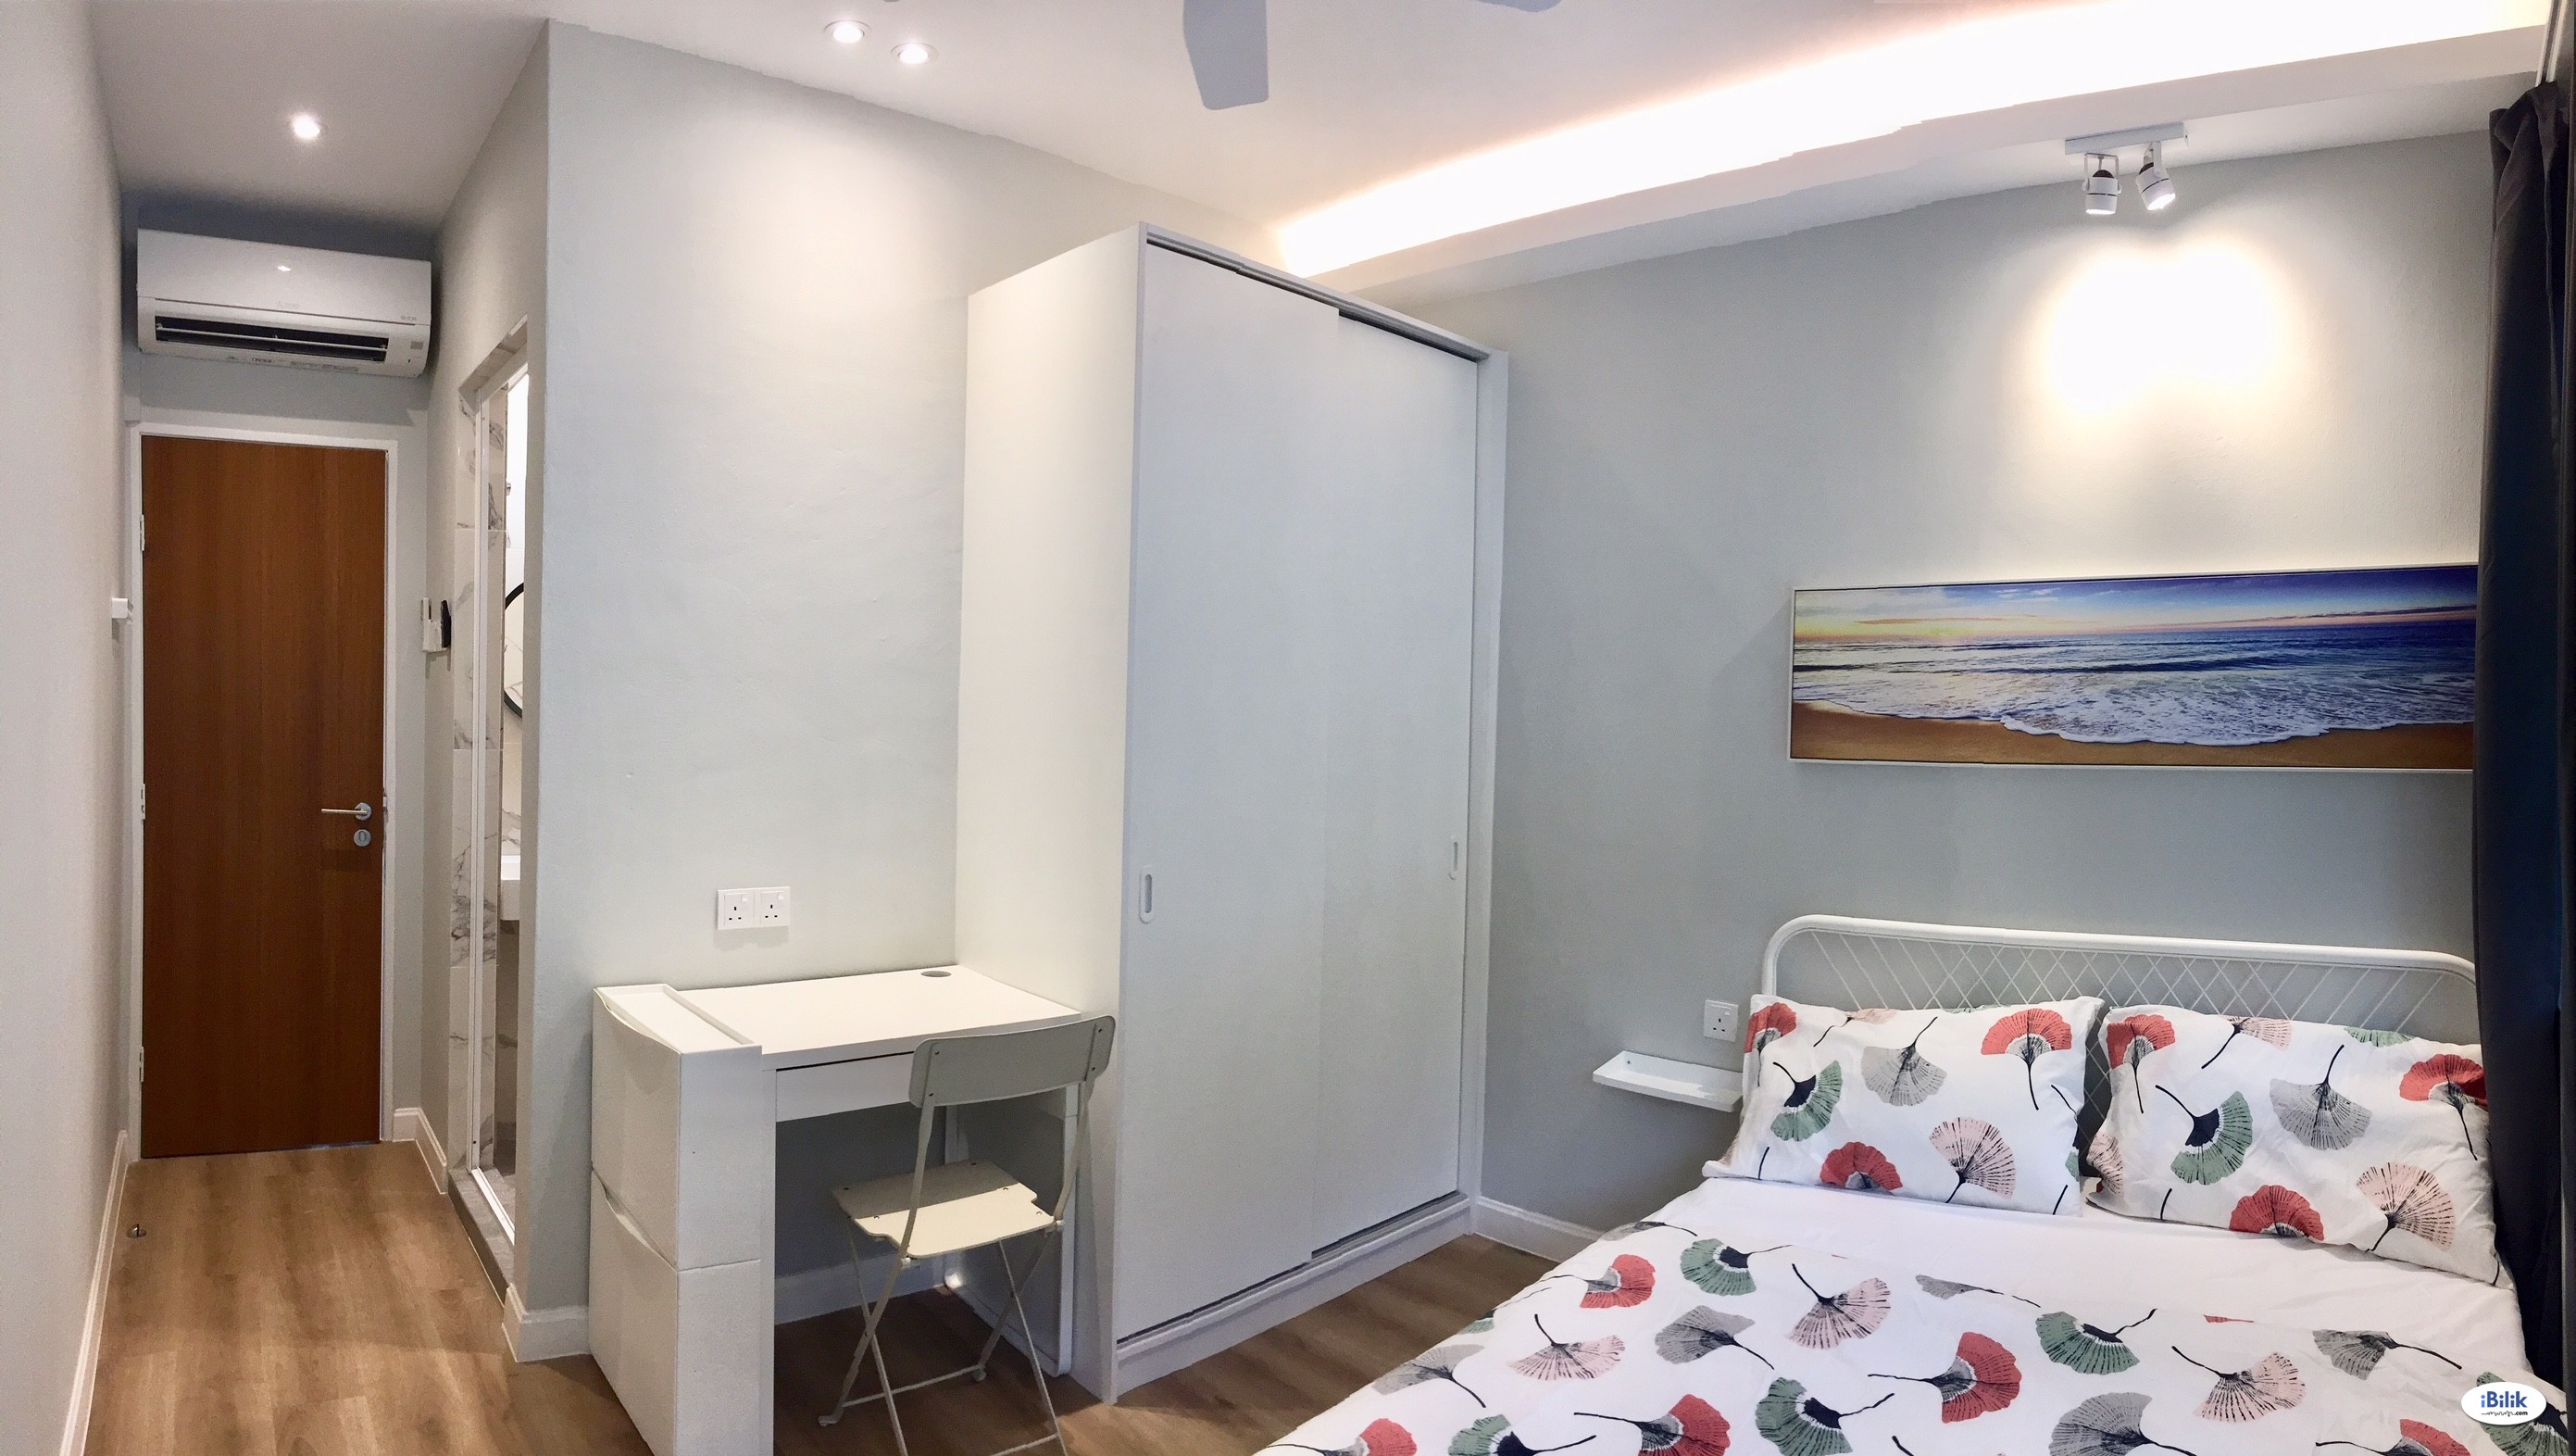 SS5 (PJ), Nice & New Fully Furnished Master Room + Private Attached Bathroom (Free WiFi & Cleaning)